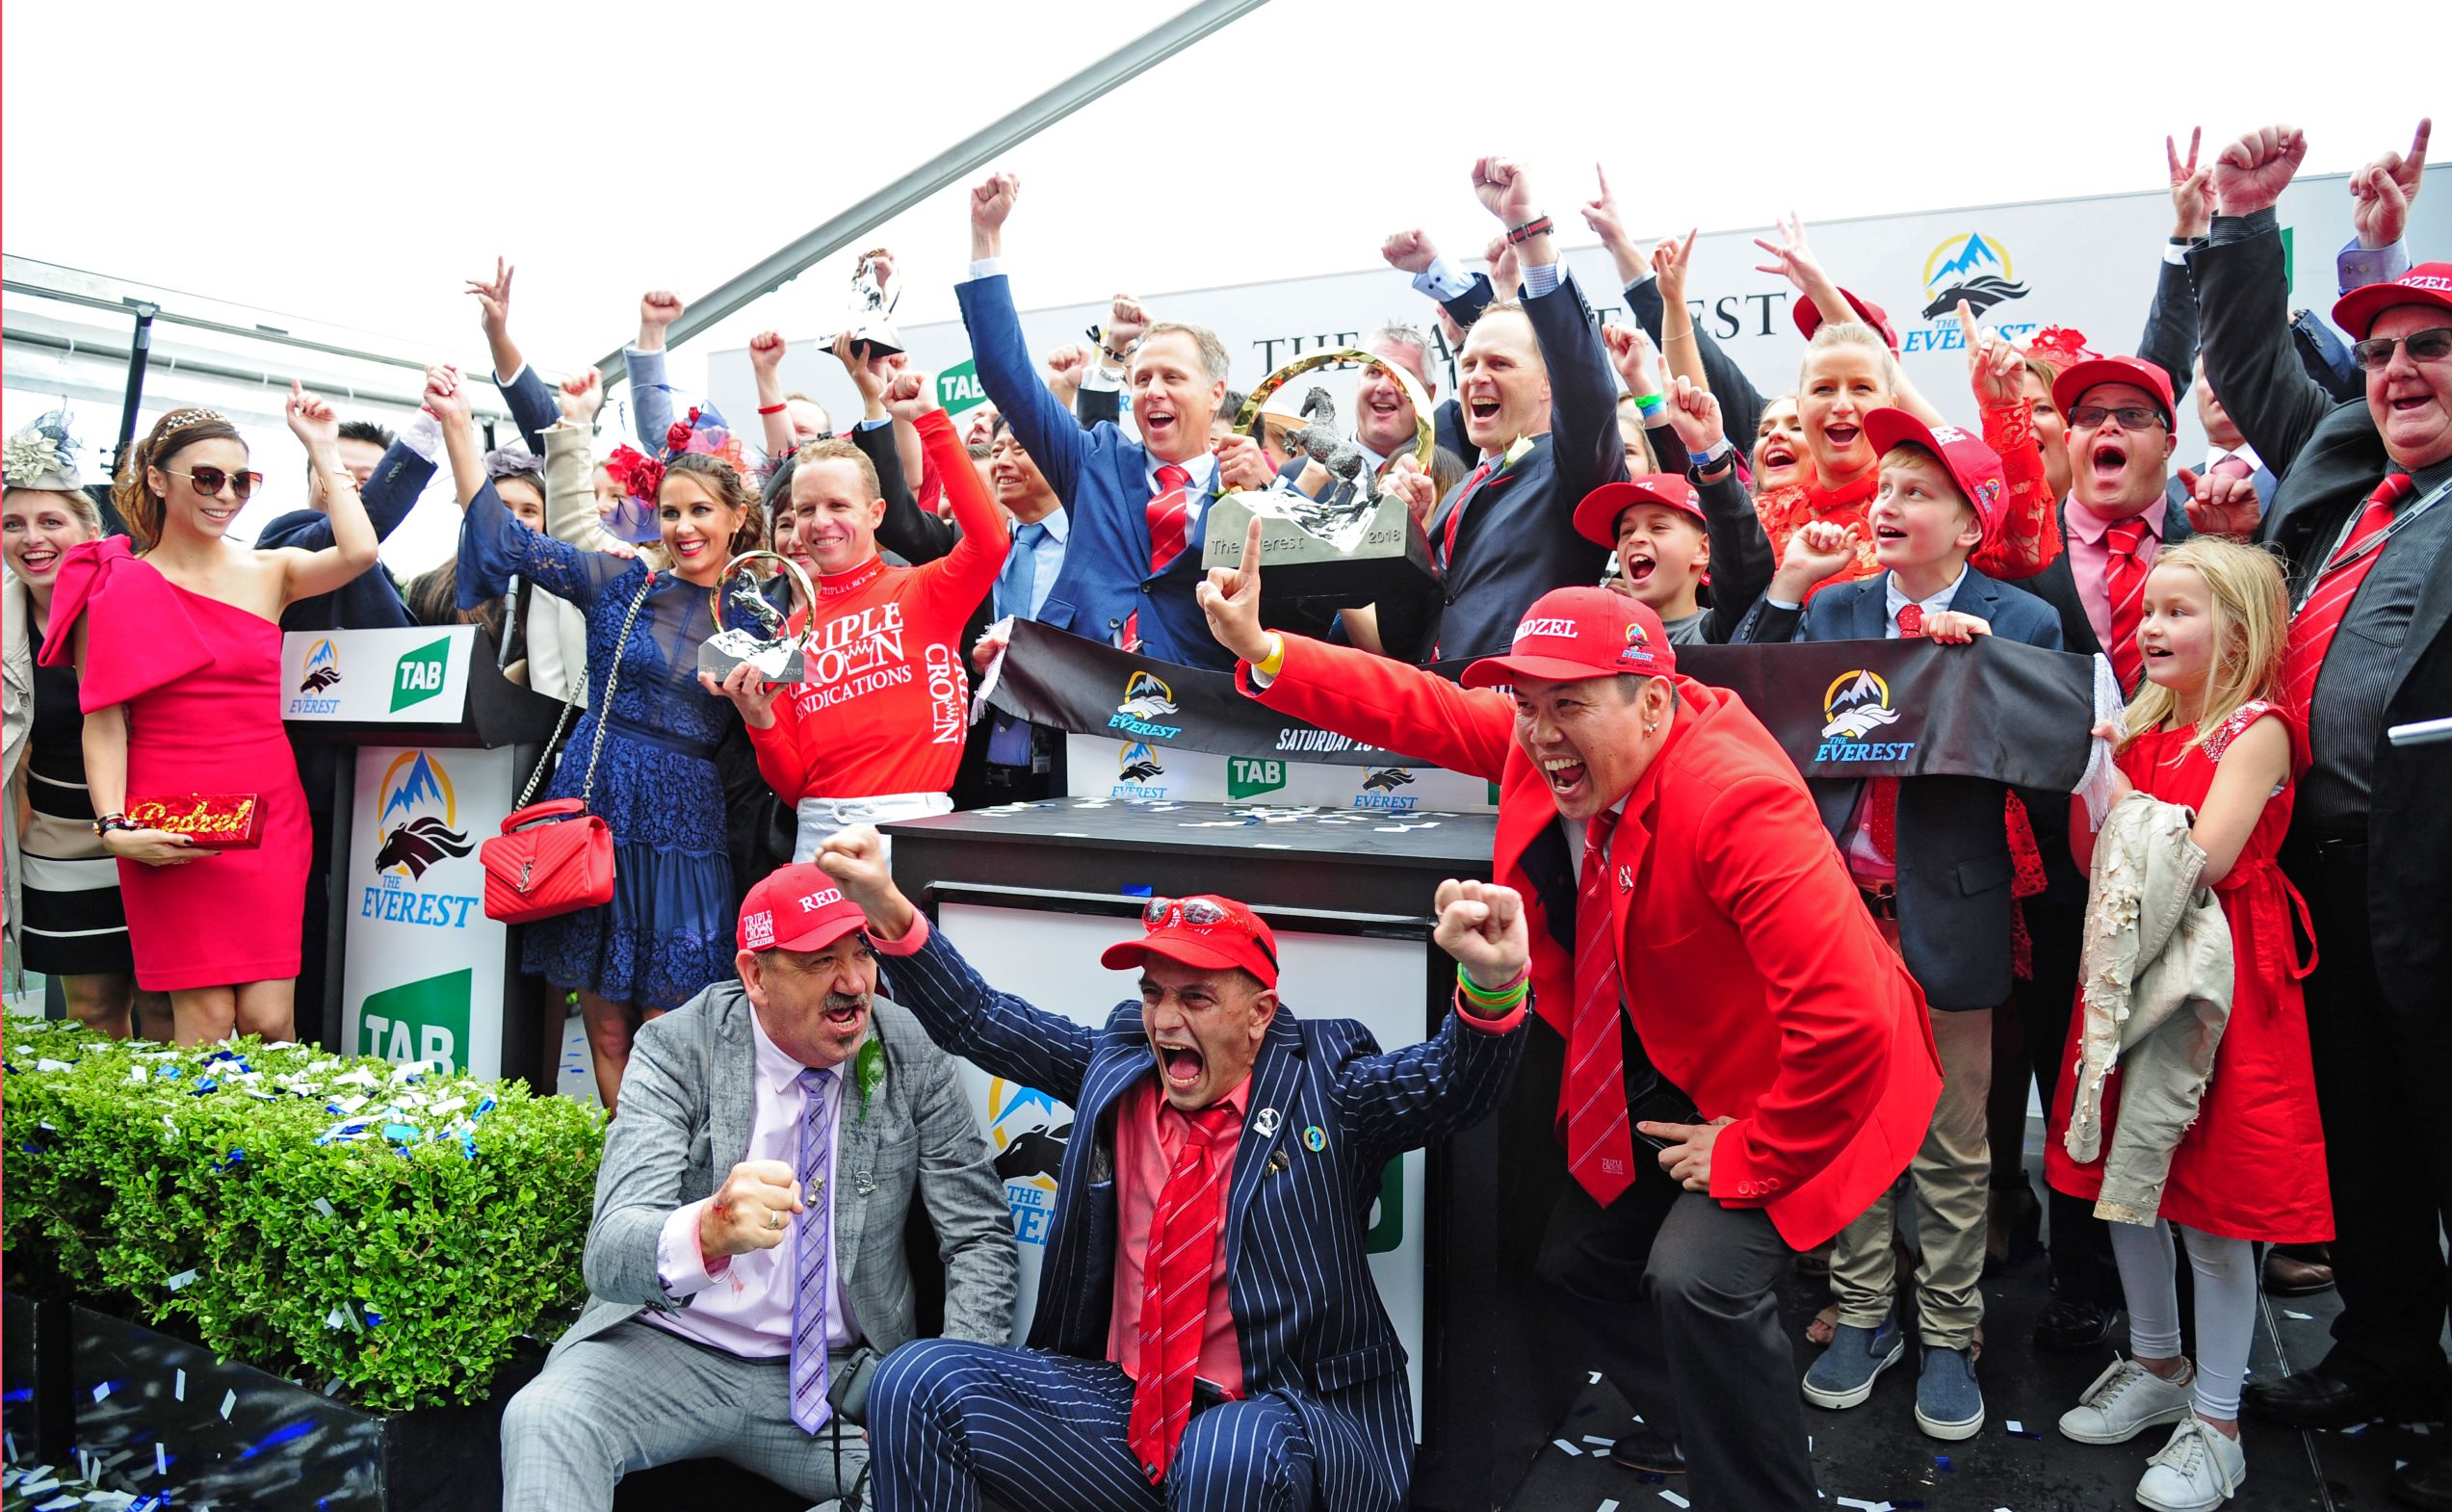 Connections of Redzel celebrate after winning his second Everest